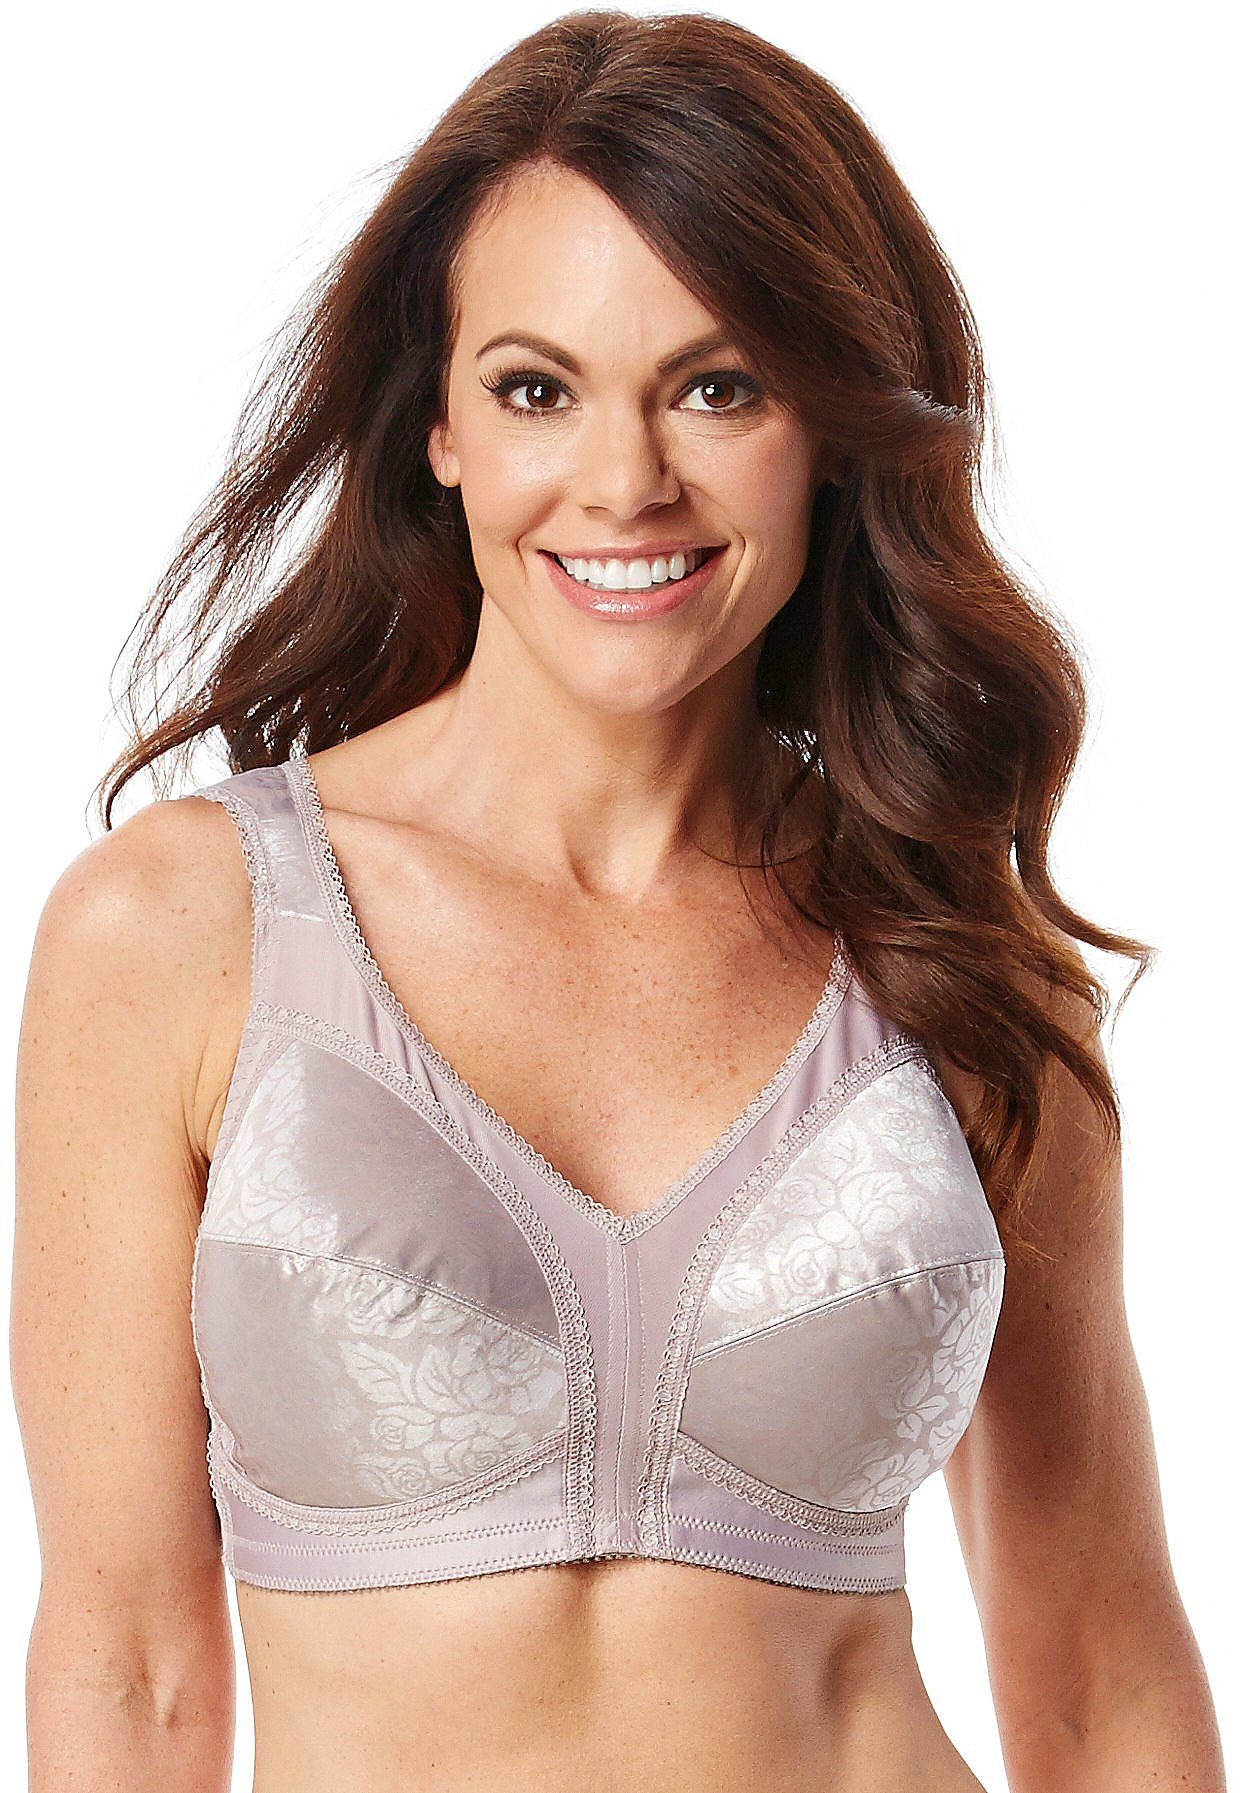 60c25b1aa6 2 Playtex 18 Hour Original Comfort Strap Wirefree Bras 4693 44ddd Warm  Steel. About this product. Picture 1 of 4  Picture 2 of 4 ...